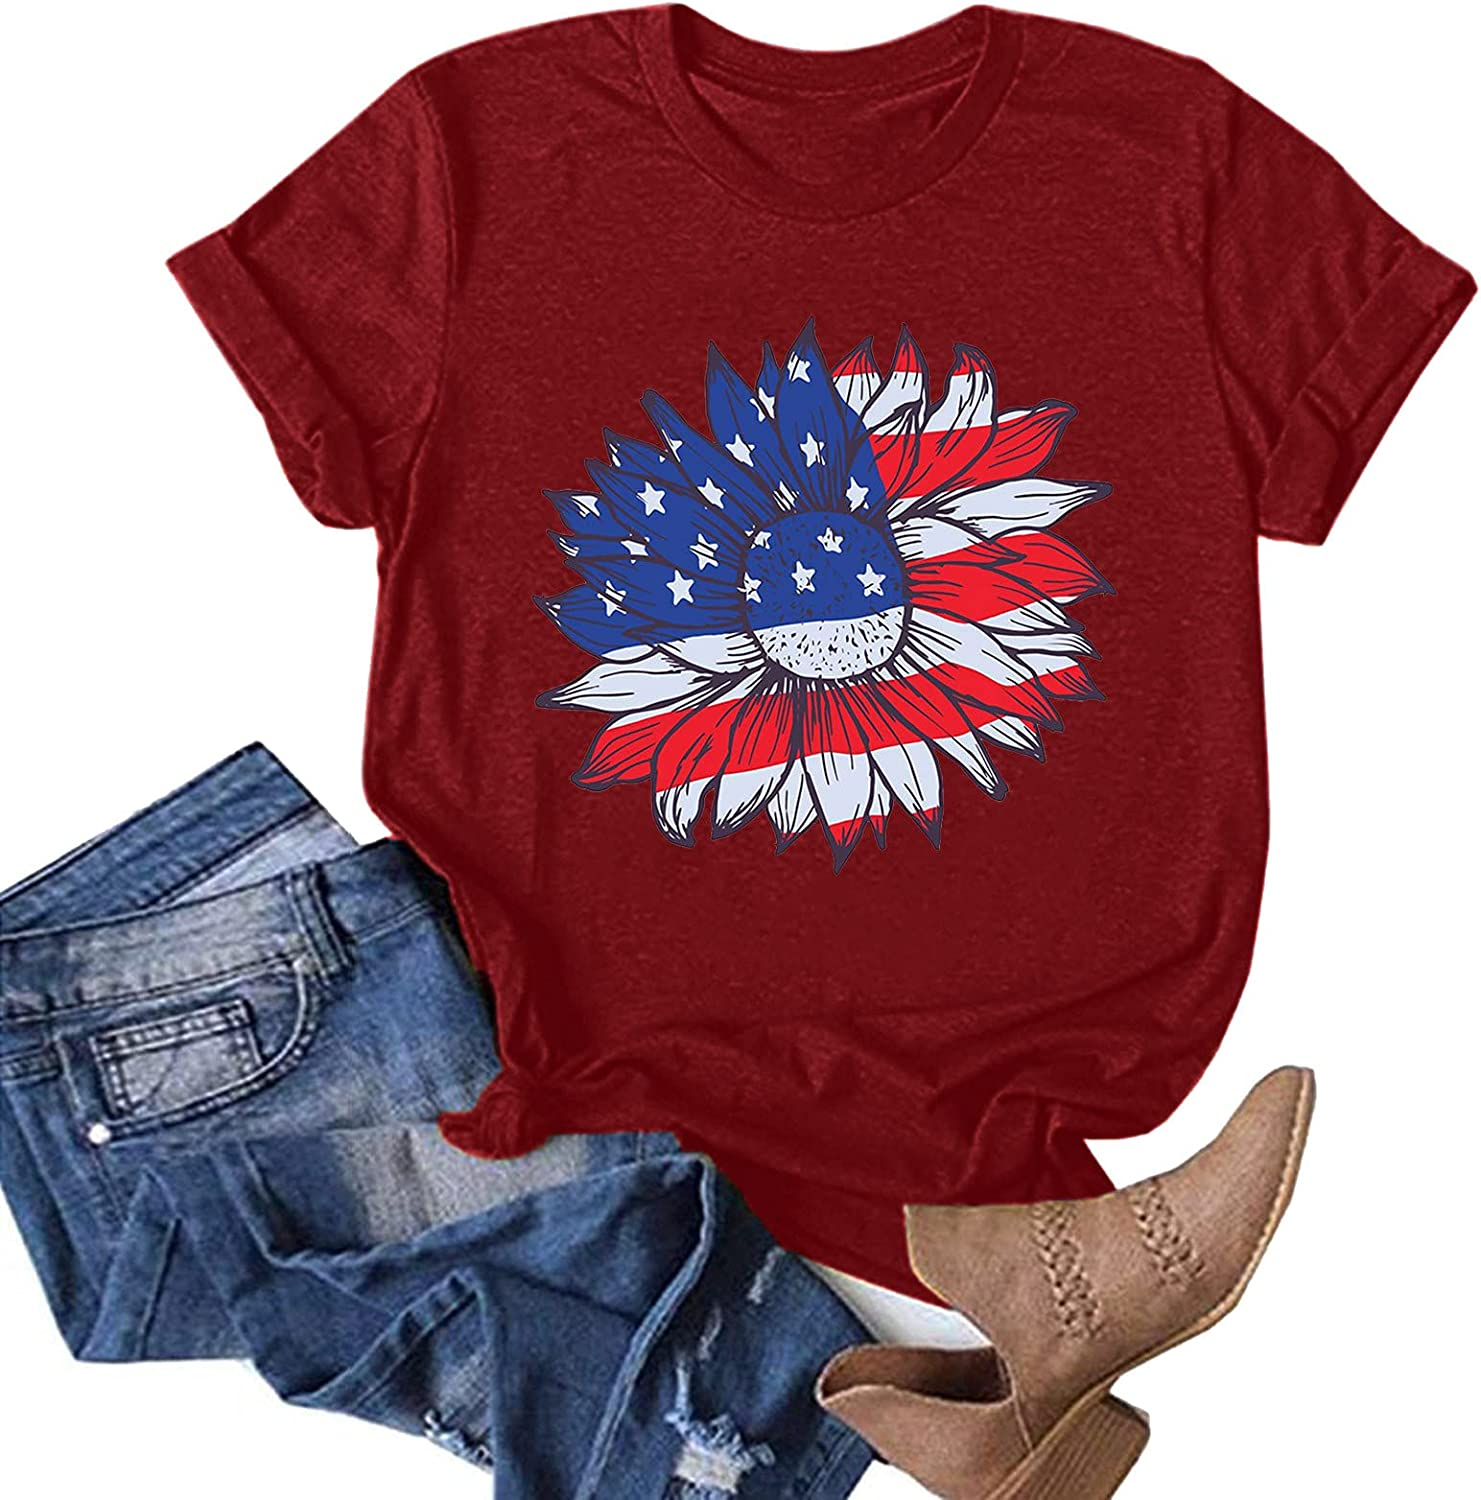 AODONG Short Sleeve Tops for Women, Womens Summer Casual Loose Fit Crewneck Graphic Tunics Tops Tees Shirts Blouses